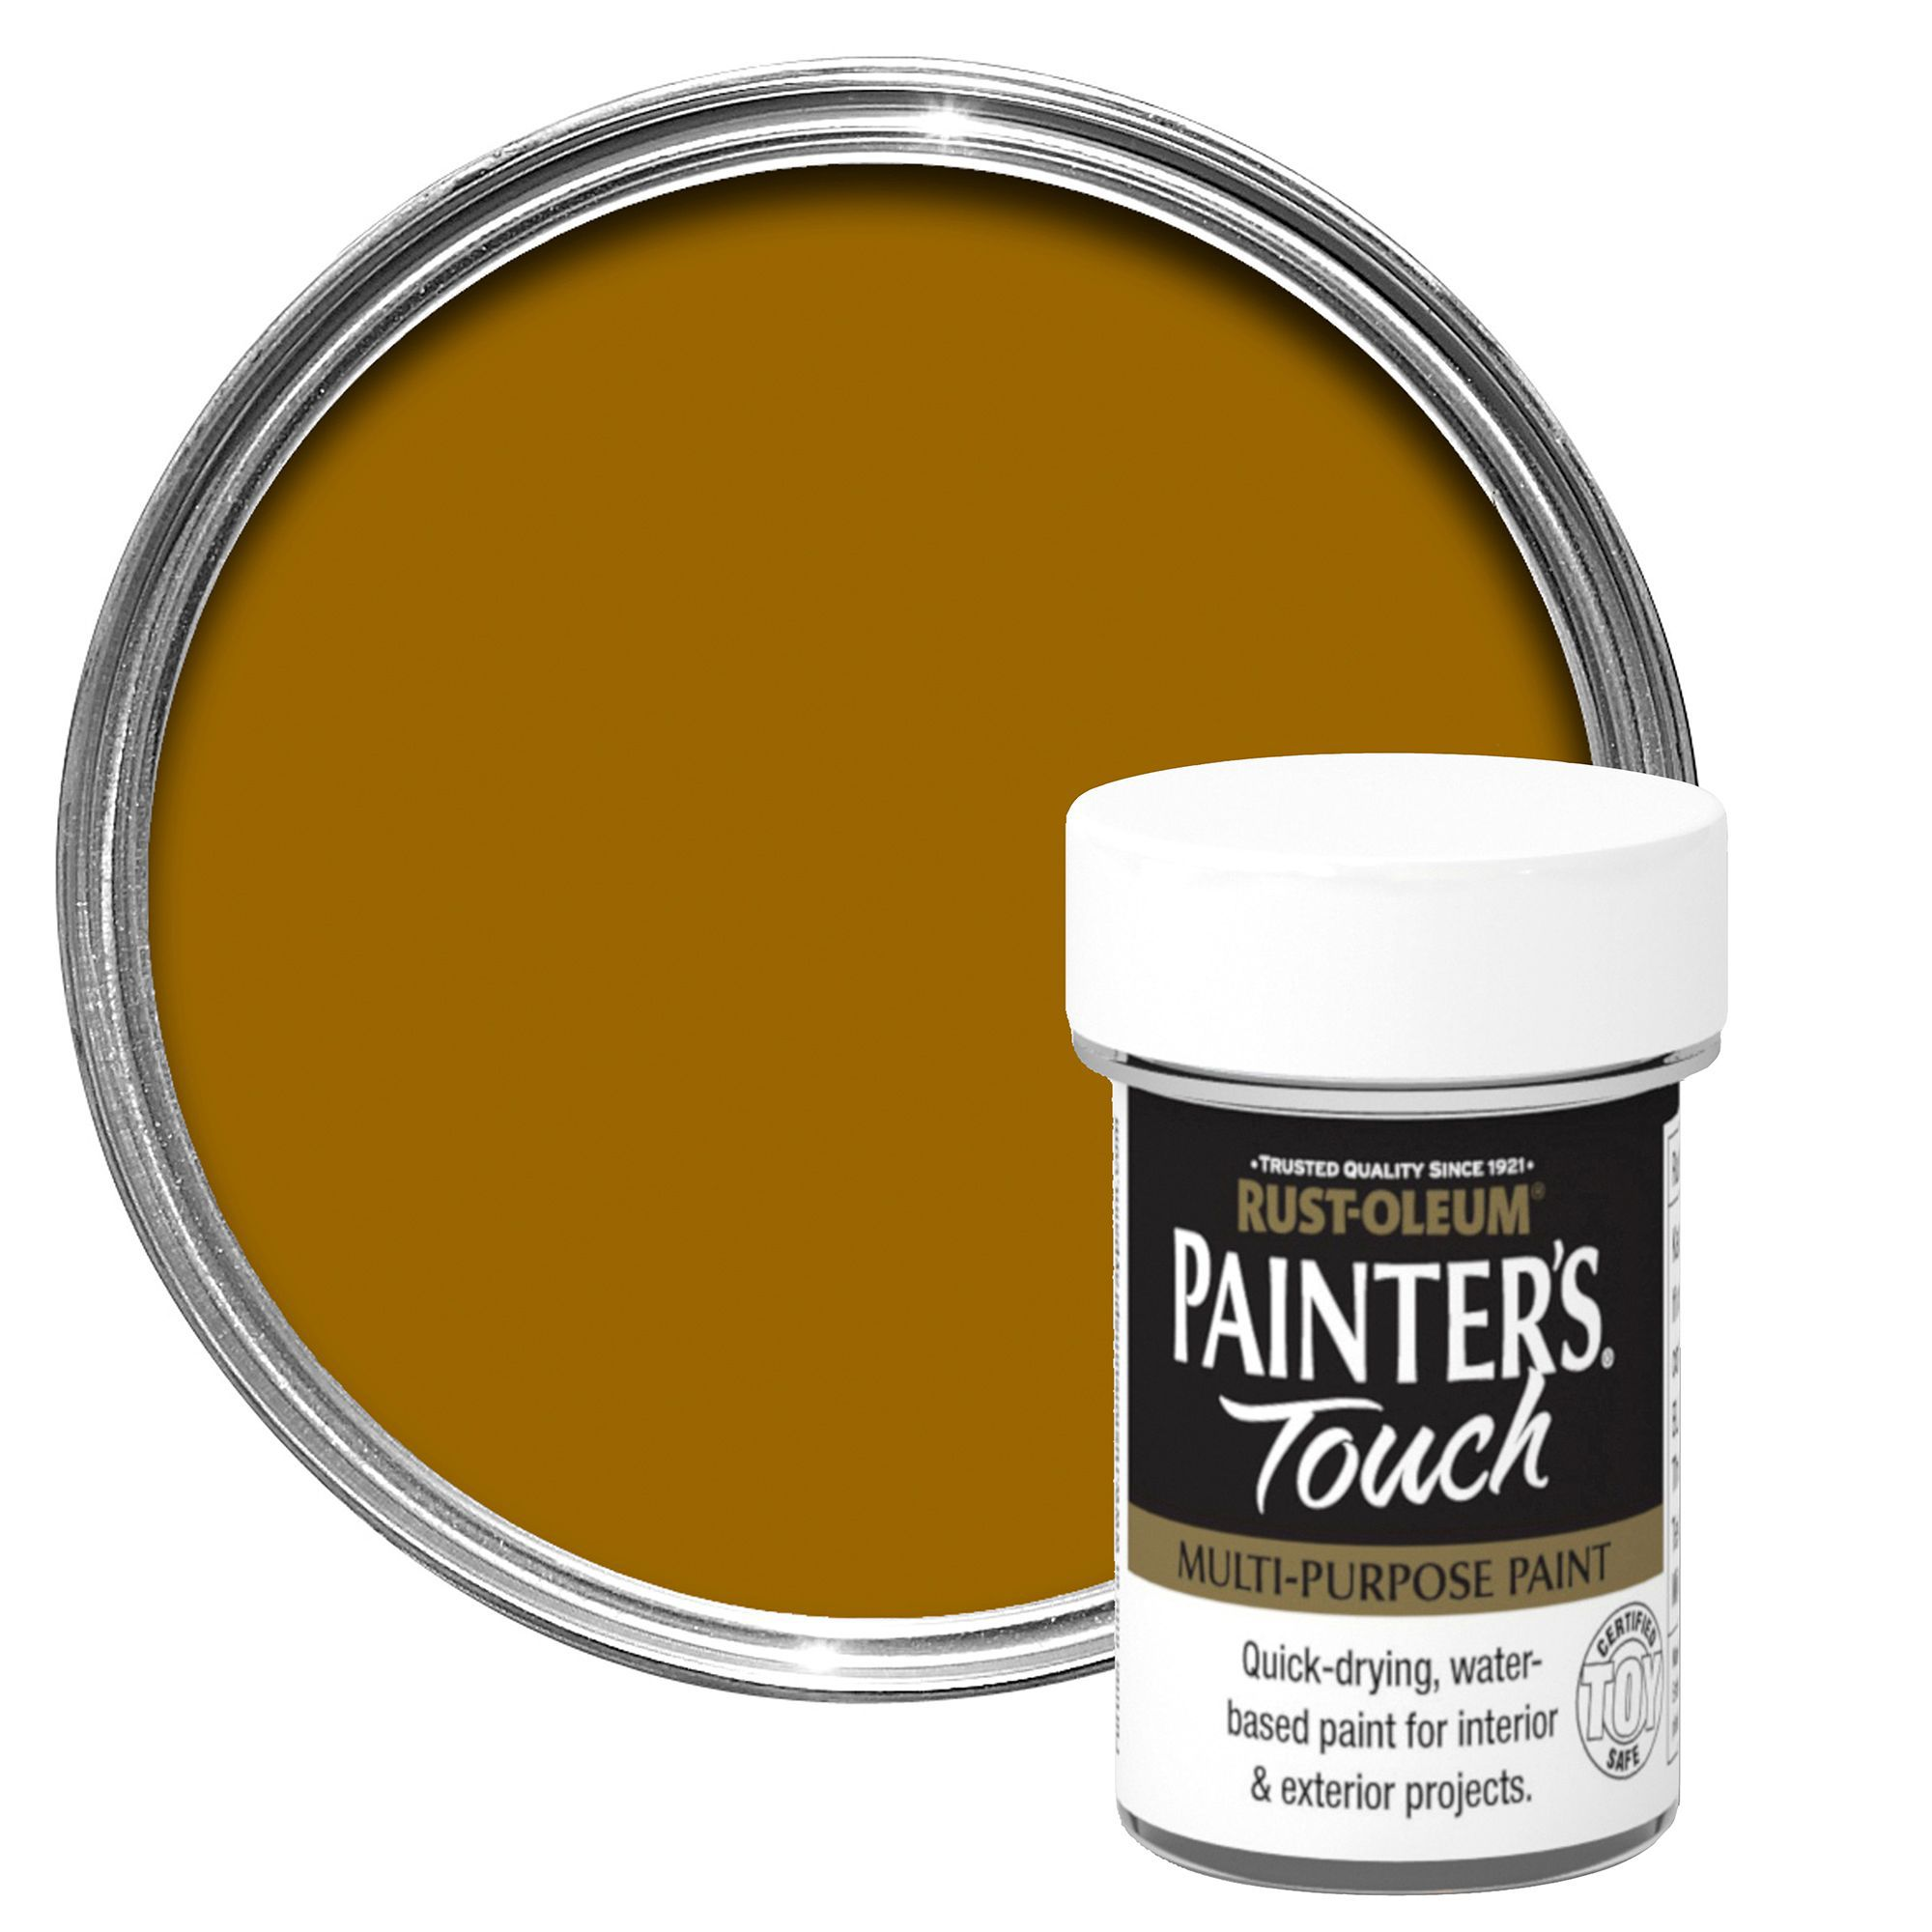 Rust-oleum Painter's Touch Interior & Exterior Antique Gold Gloss Multipurpose Paint 20ml